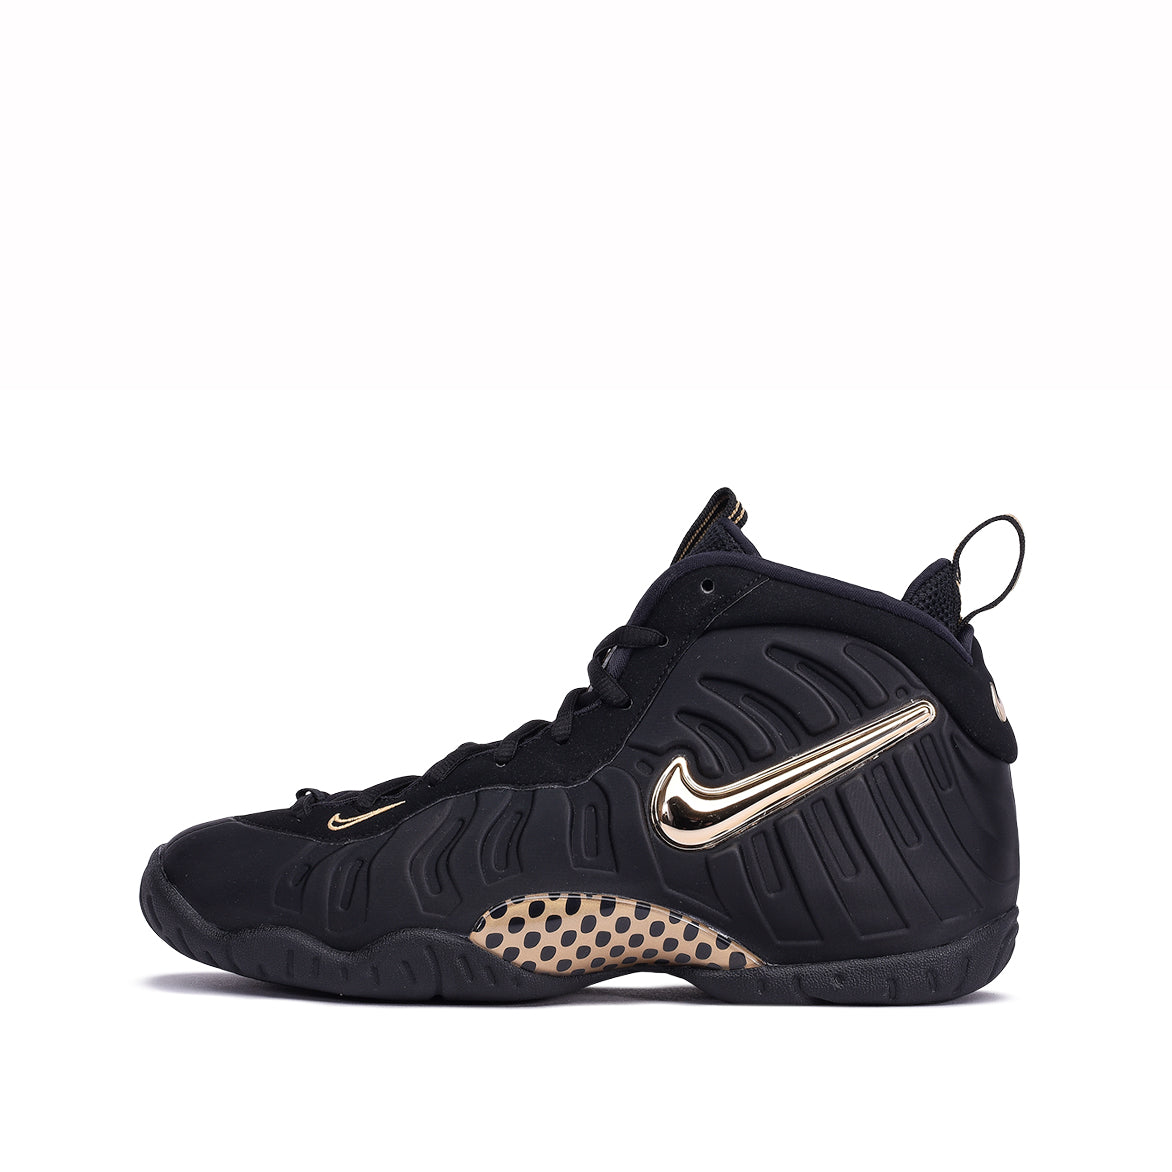 "LITTLE POSITE PRO (GS)  ""BLACK / METALLIC GOLD"""